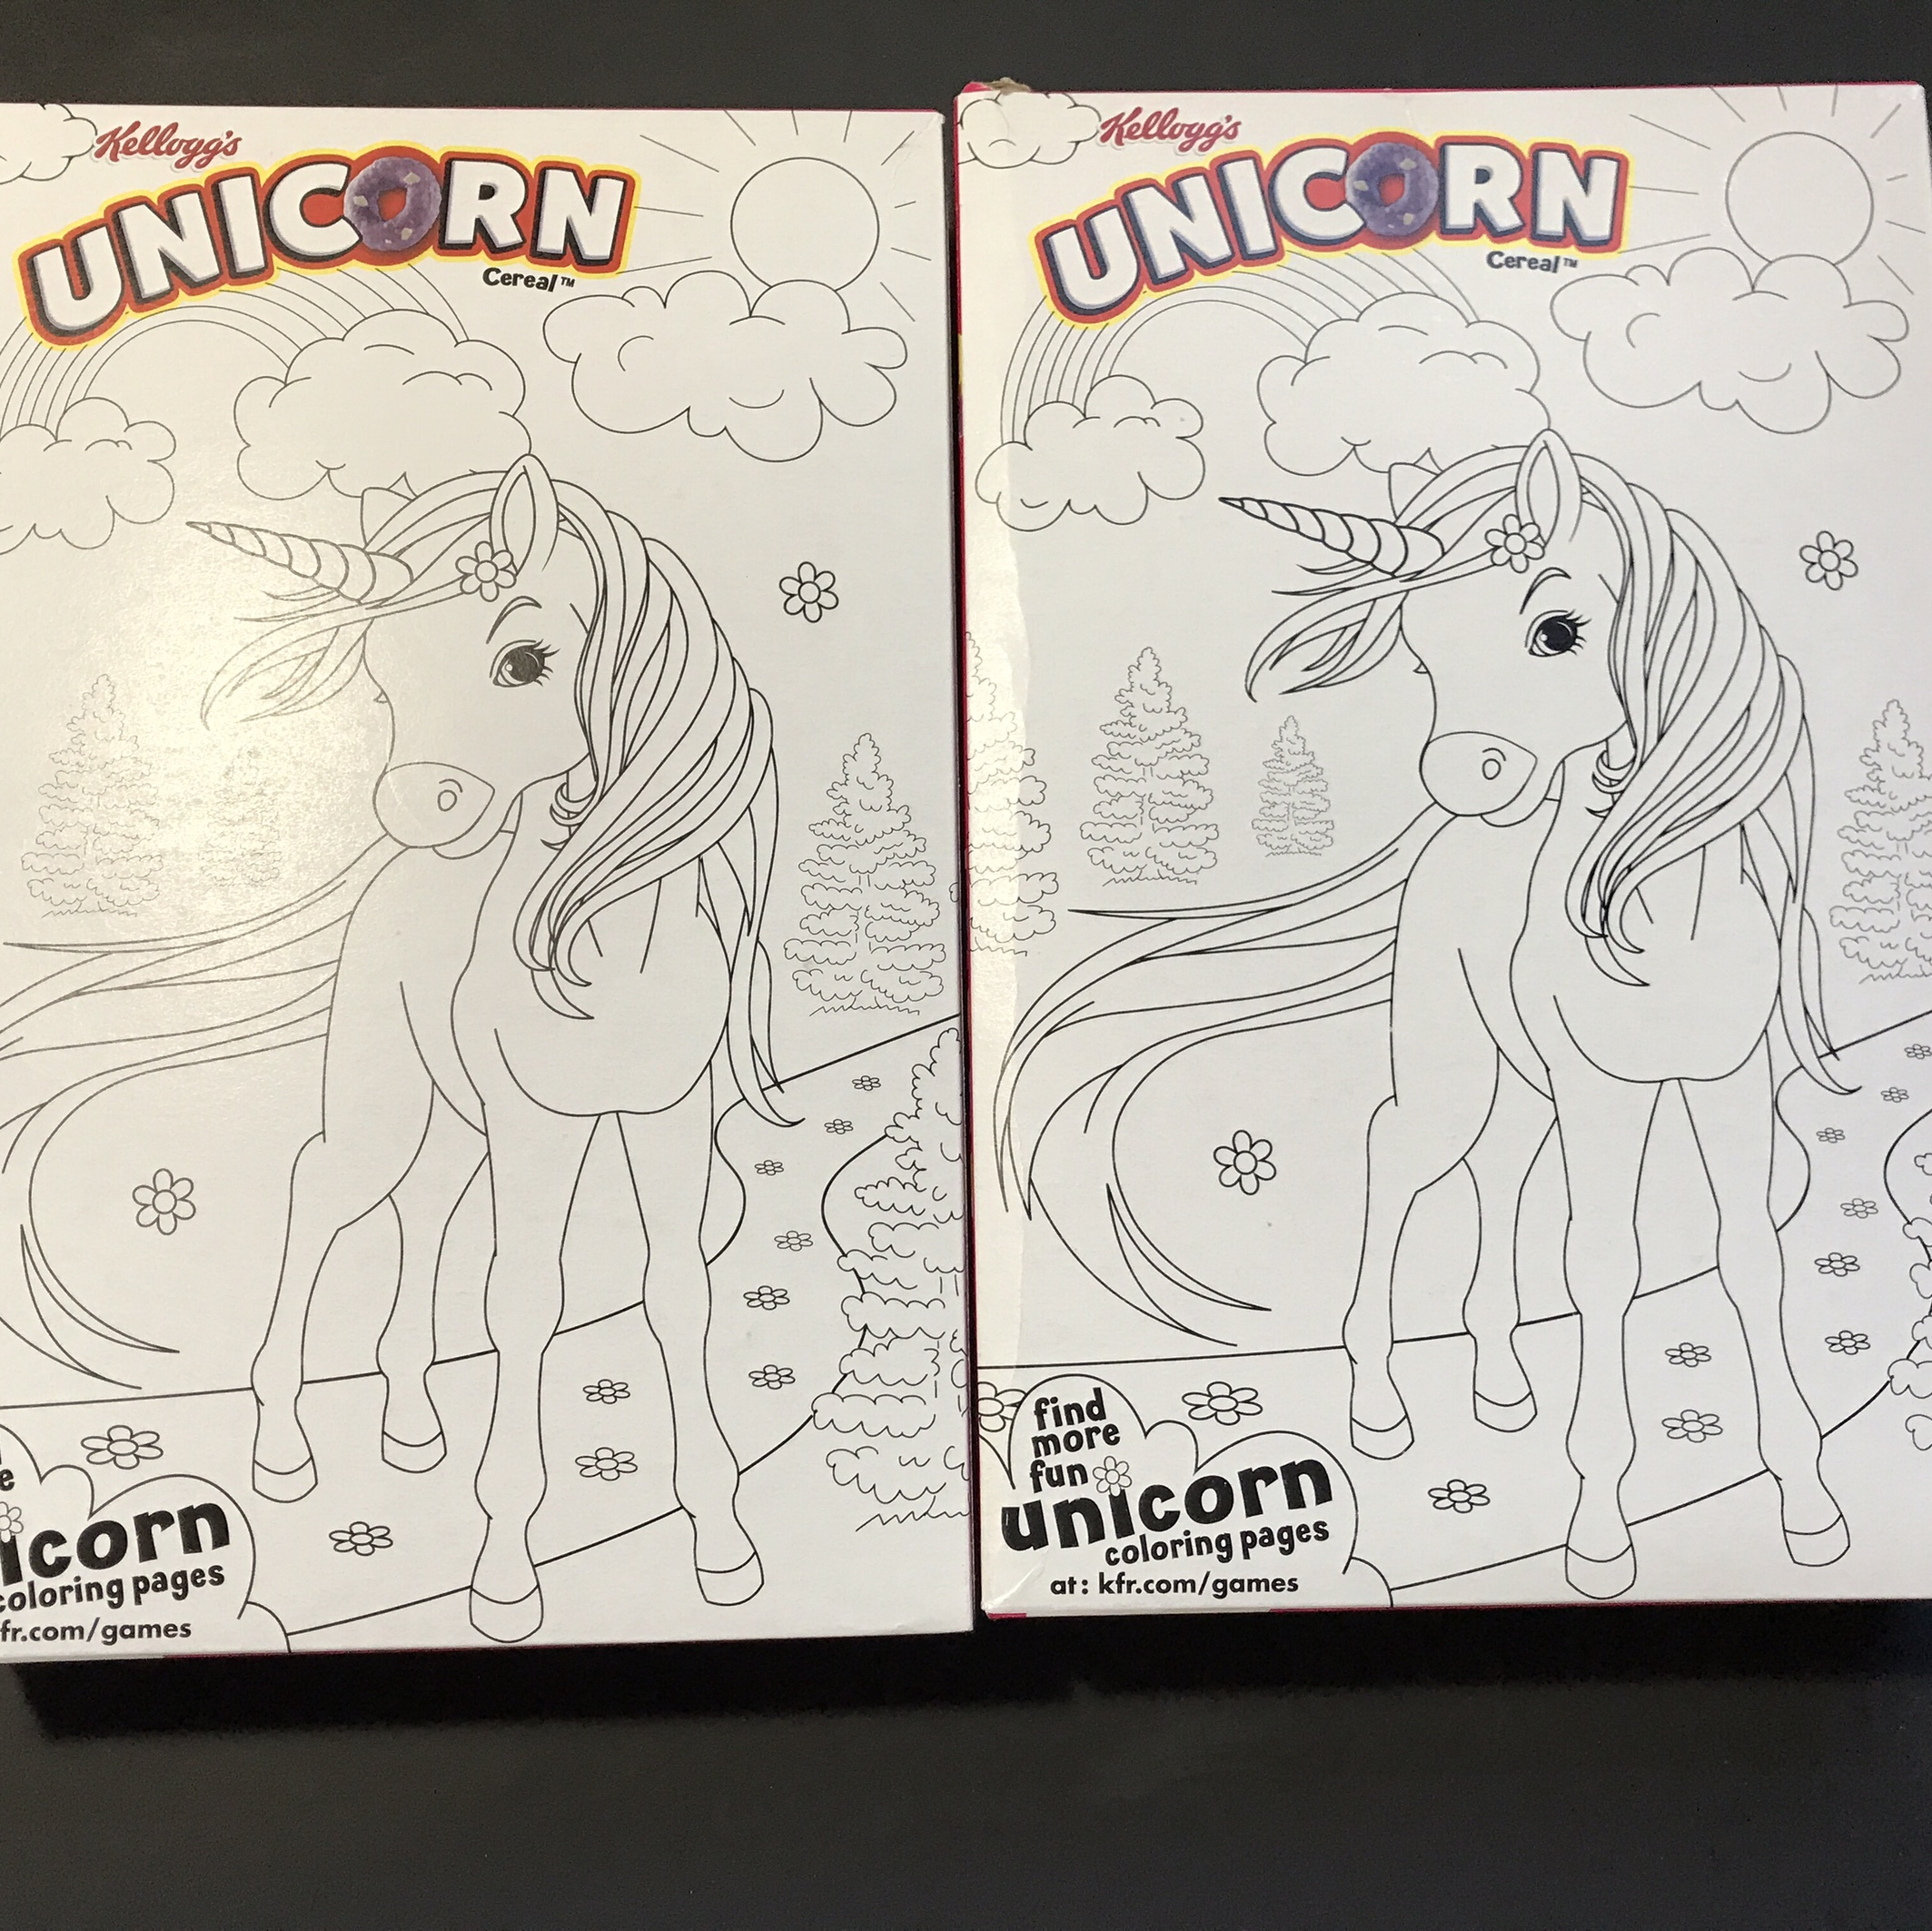 2 Boxes Of Limited Edition Unicorn Cereal By Depop